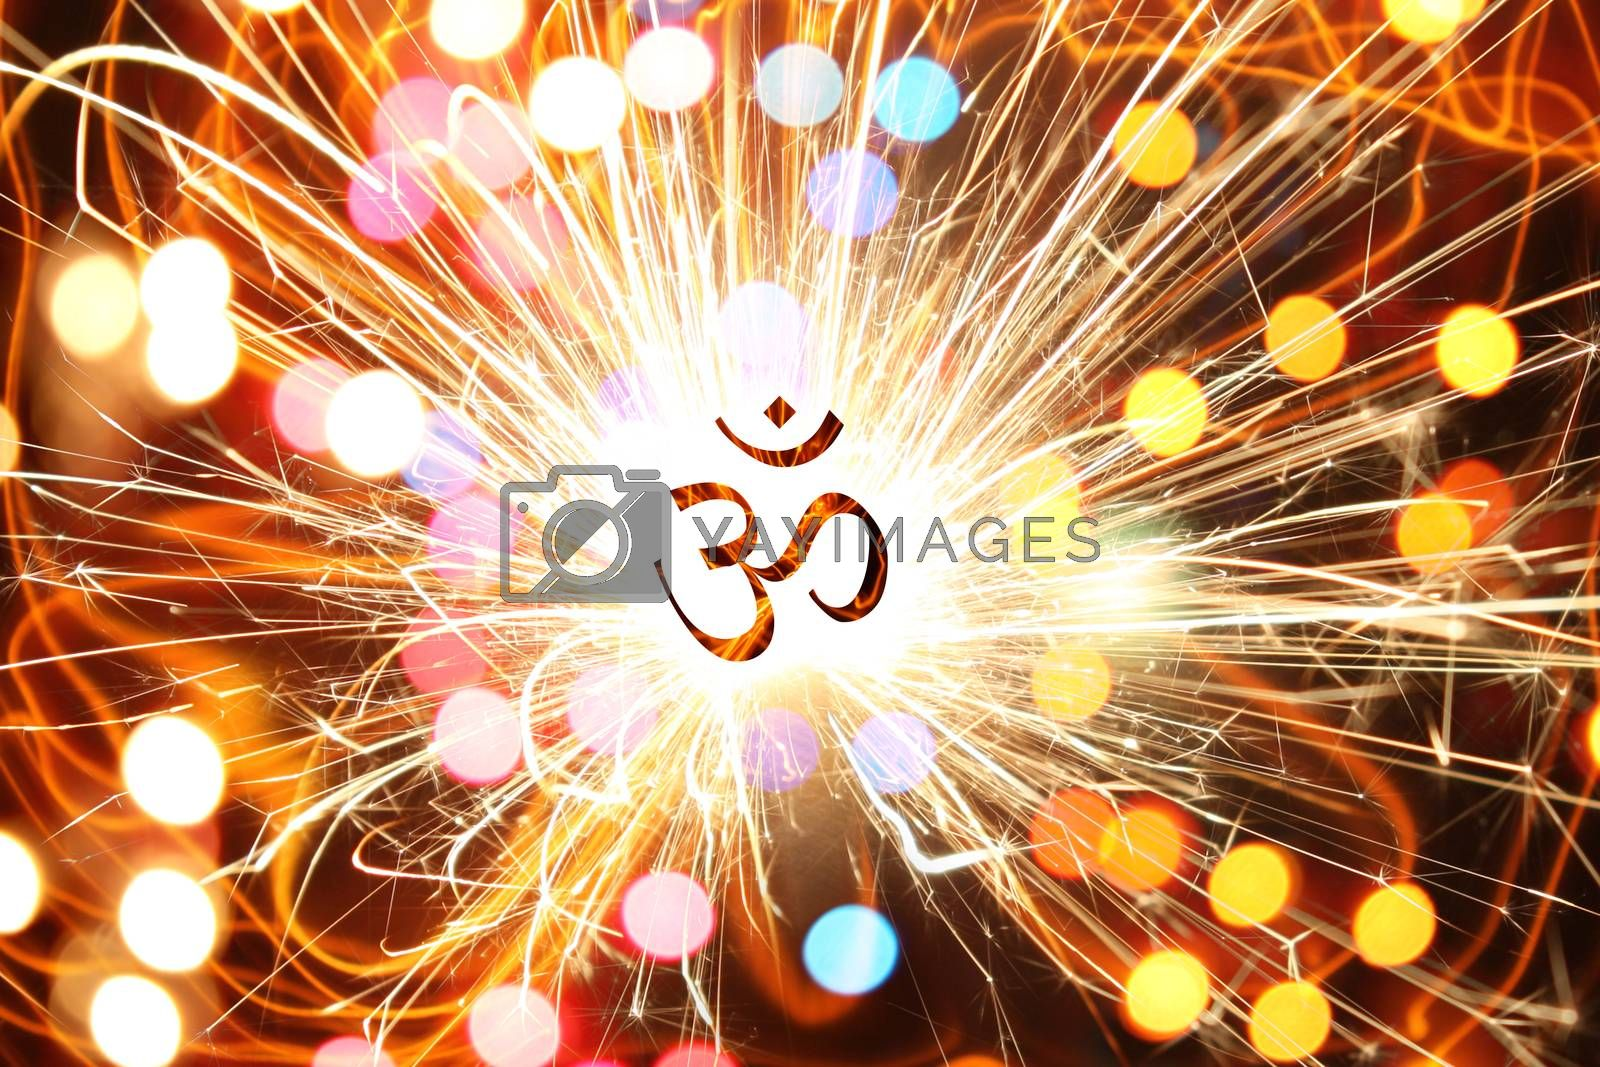 An abstract art showing the enerigies and powers around the Hindu Symbol OM, depicting healing, spiritual or religious energies.